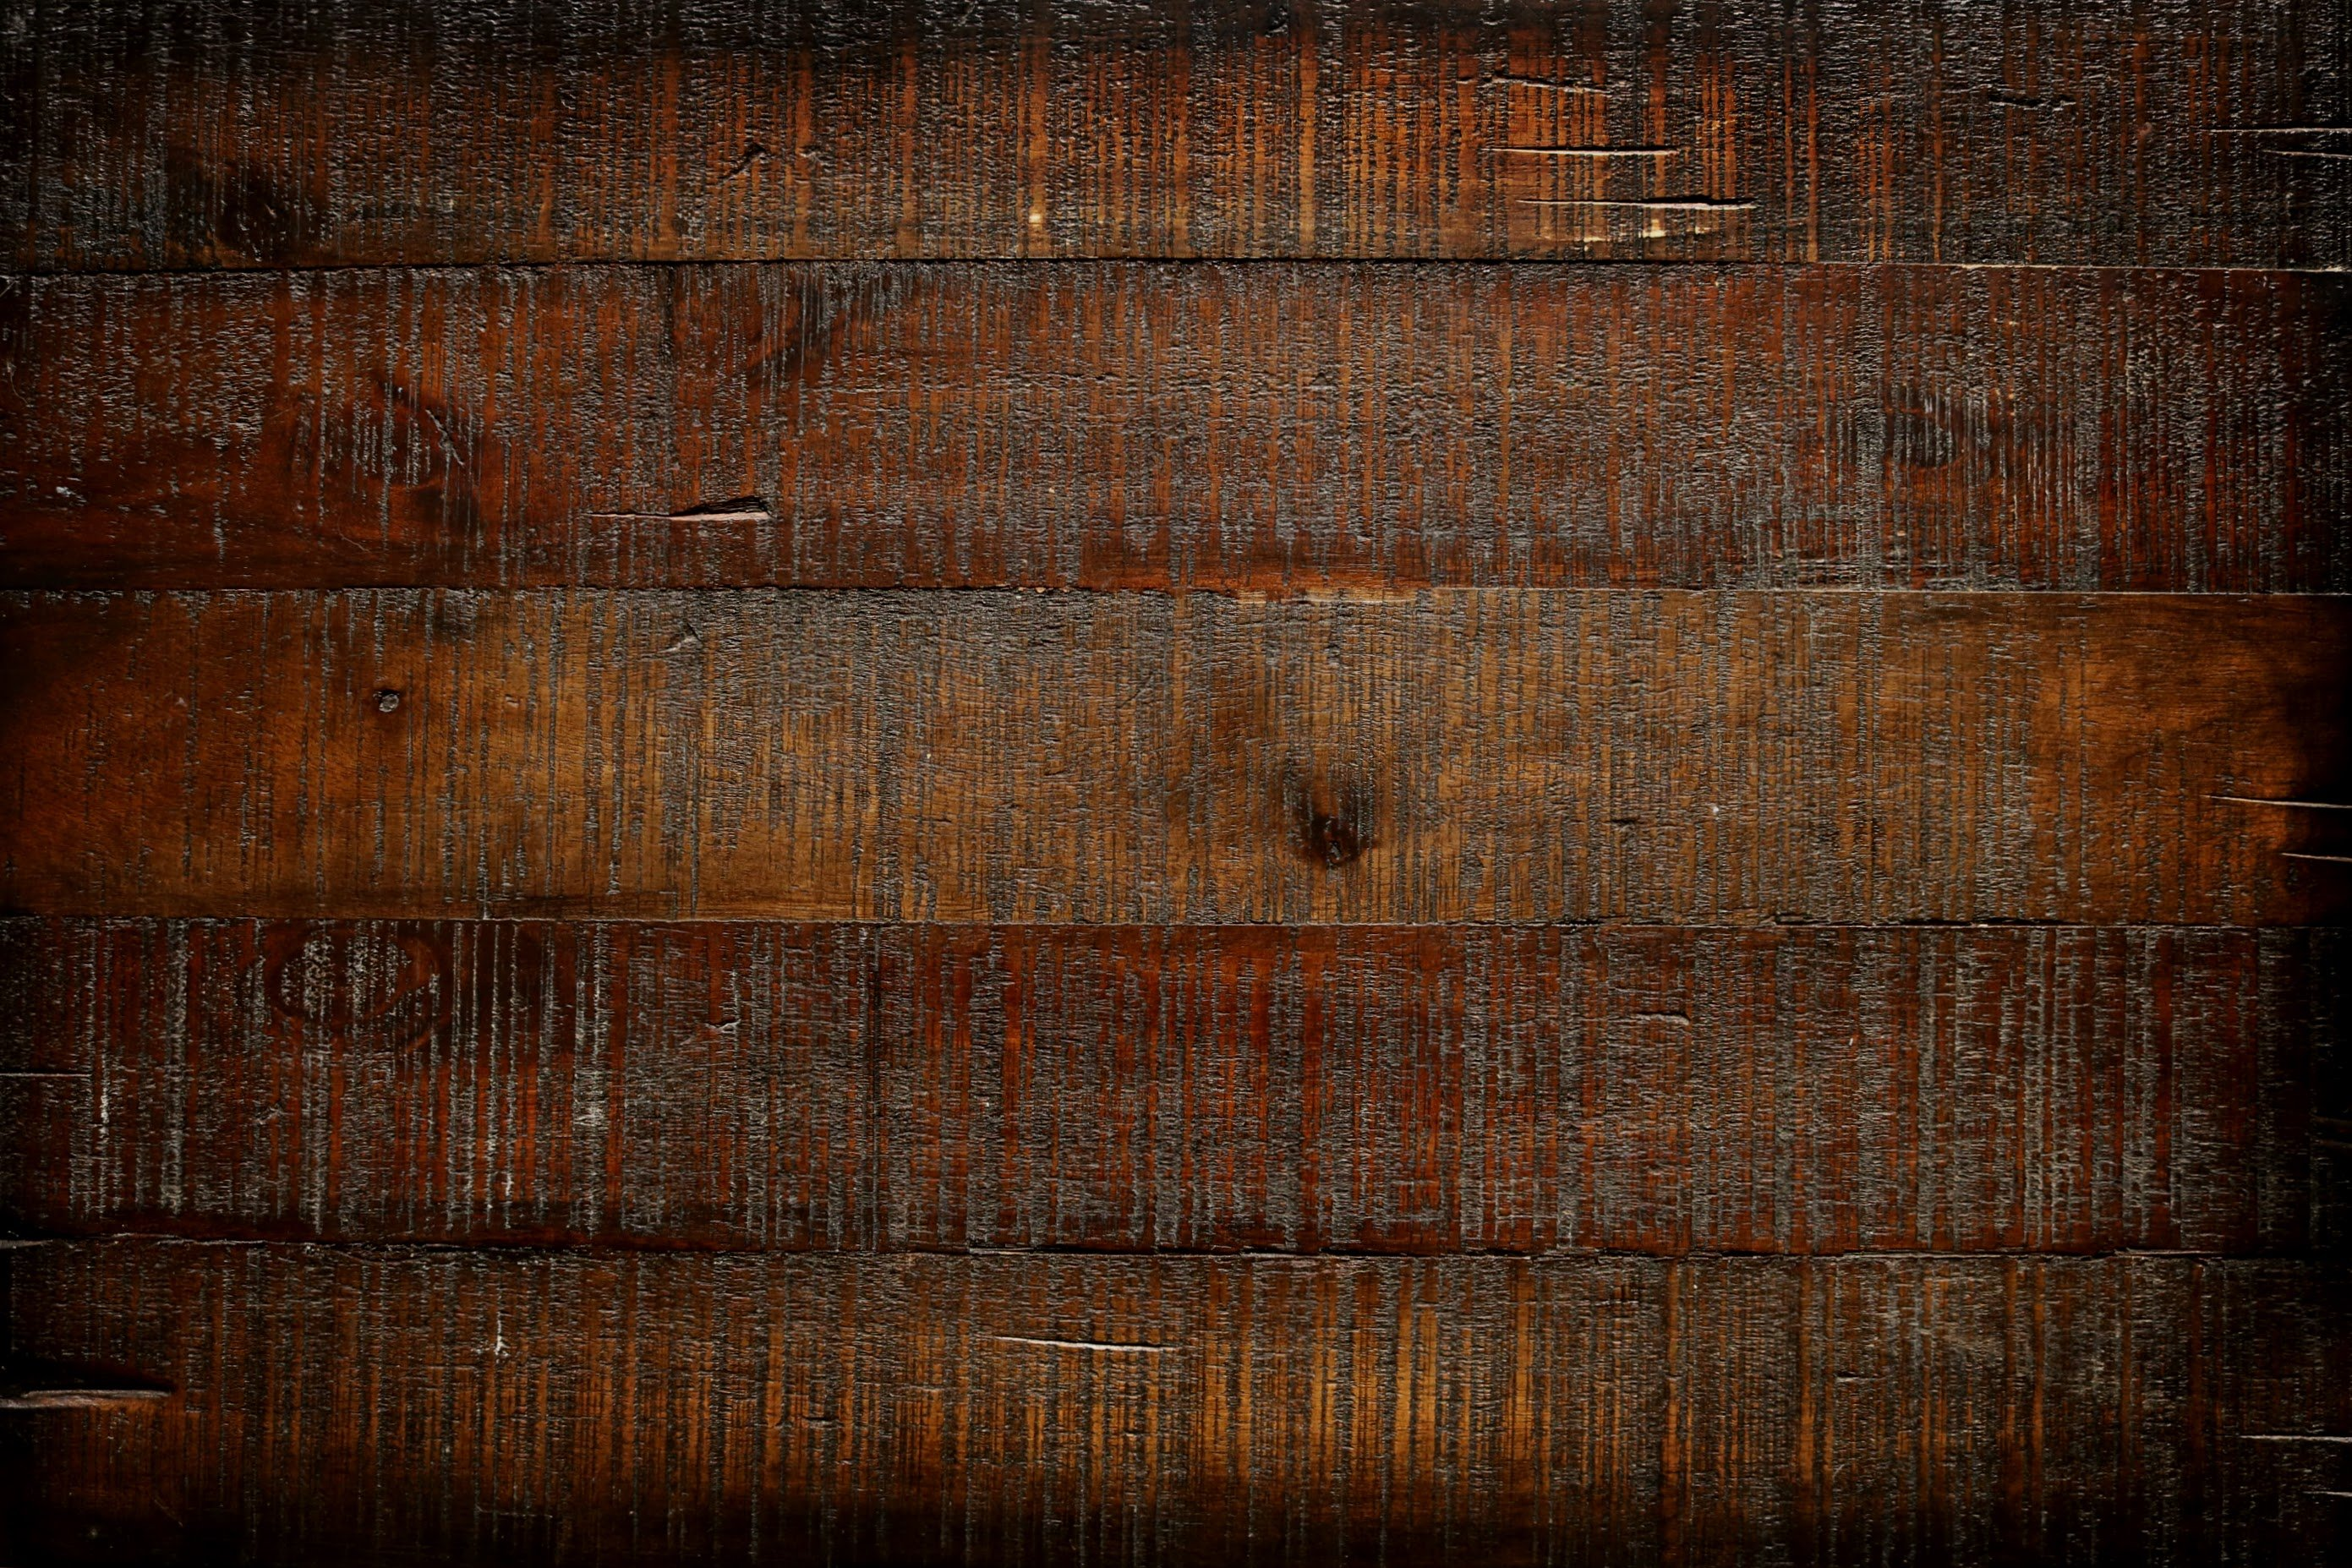 Dark Wood Background Texture High Quality Abstract Stock Photos Creative Market